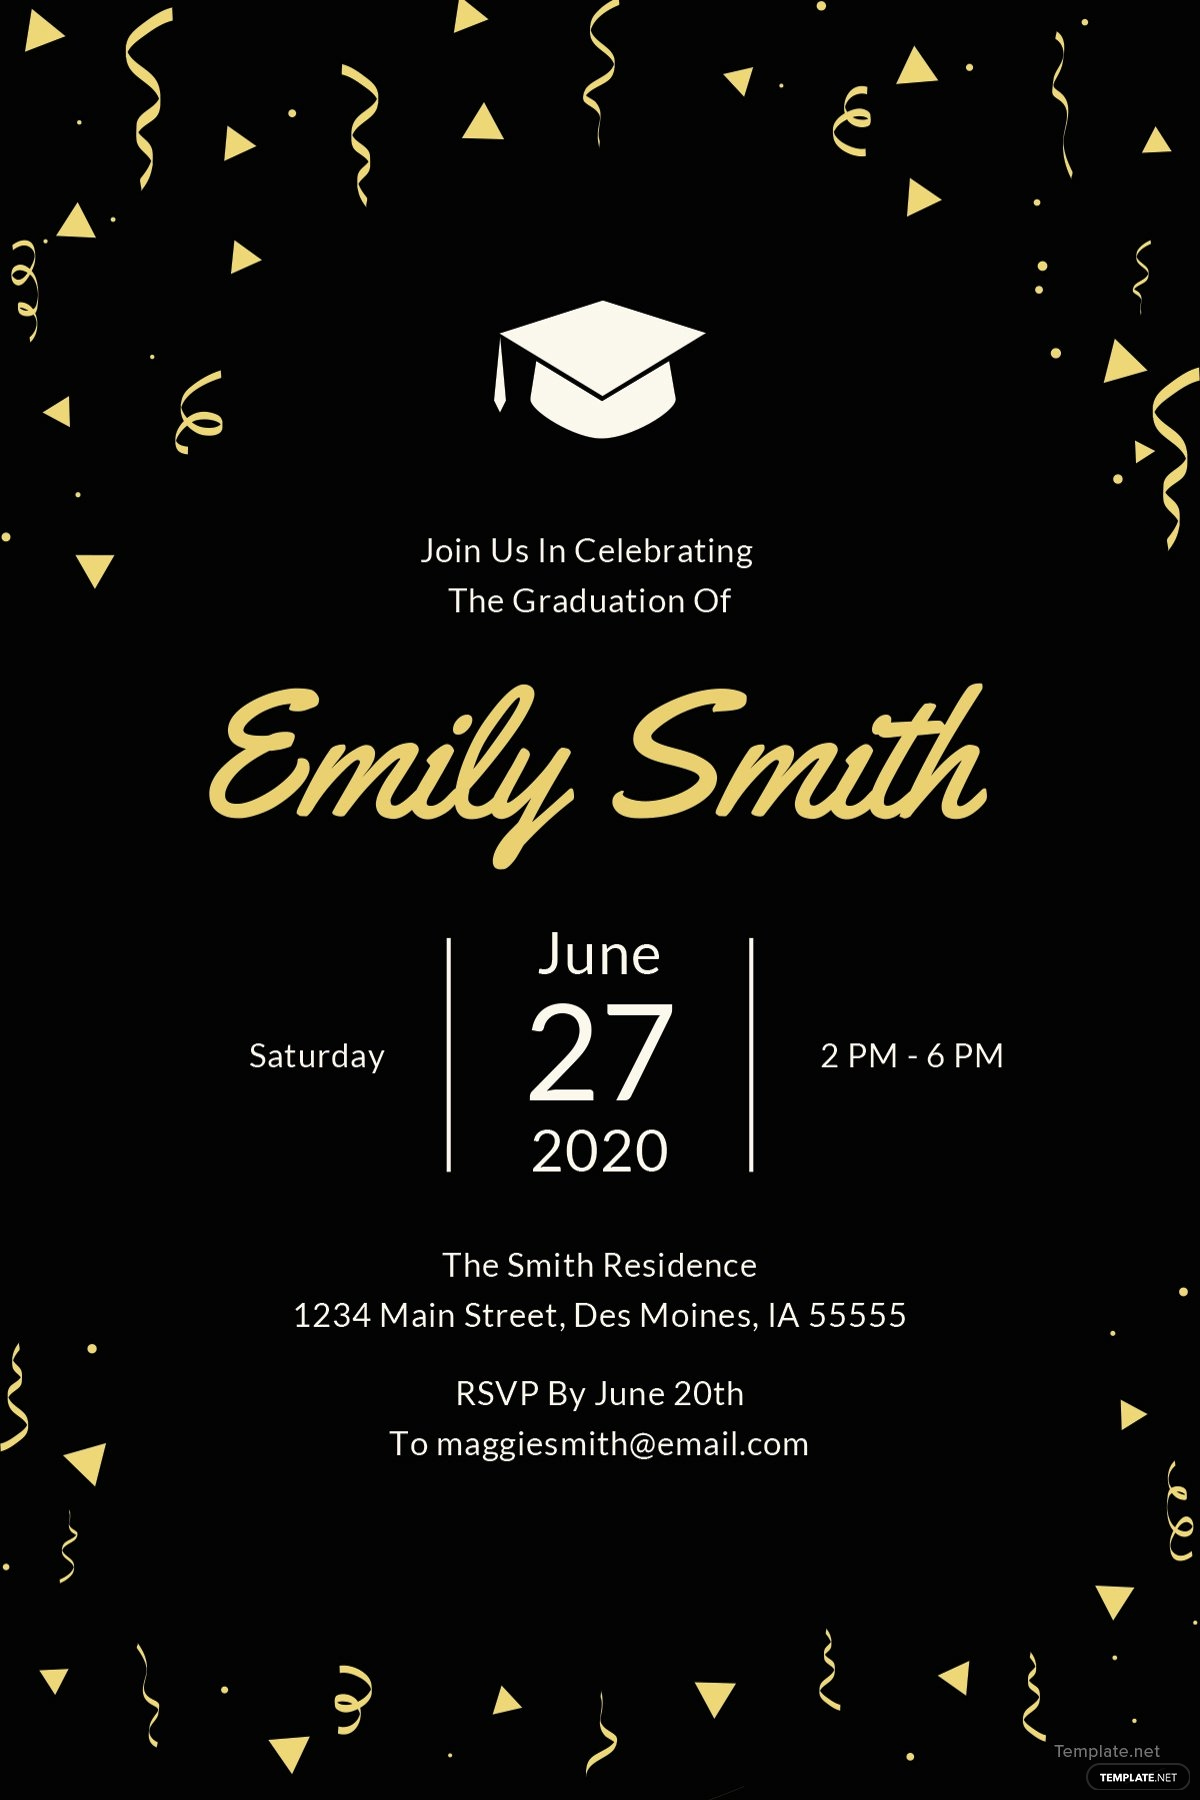 Free Grad Party Invitation Templates Inspirational Free Graduation Invitation Template In Microsoft Word